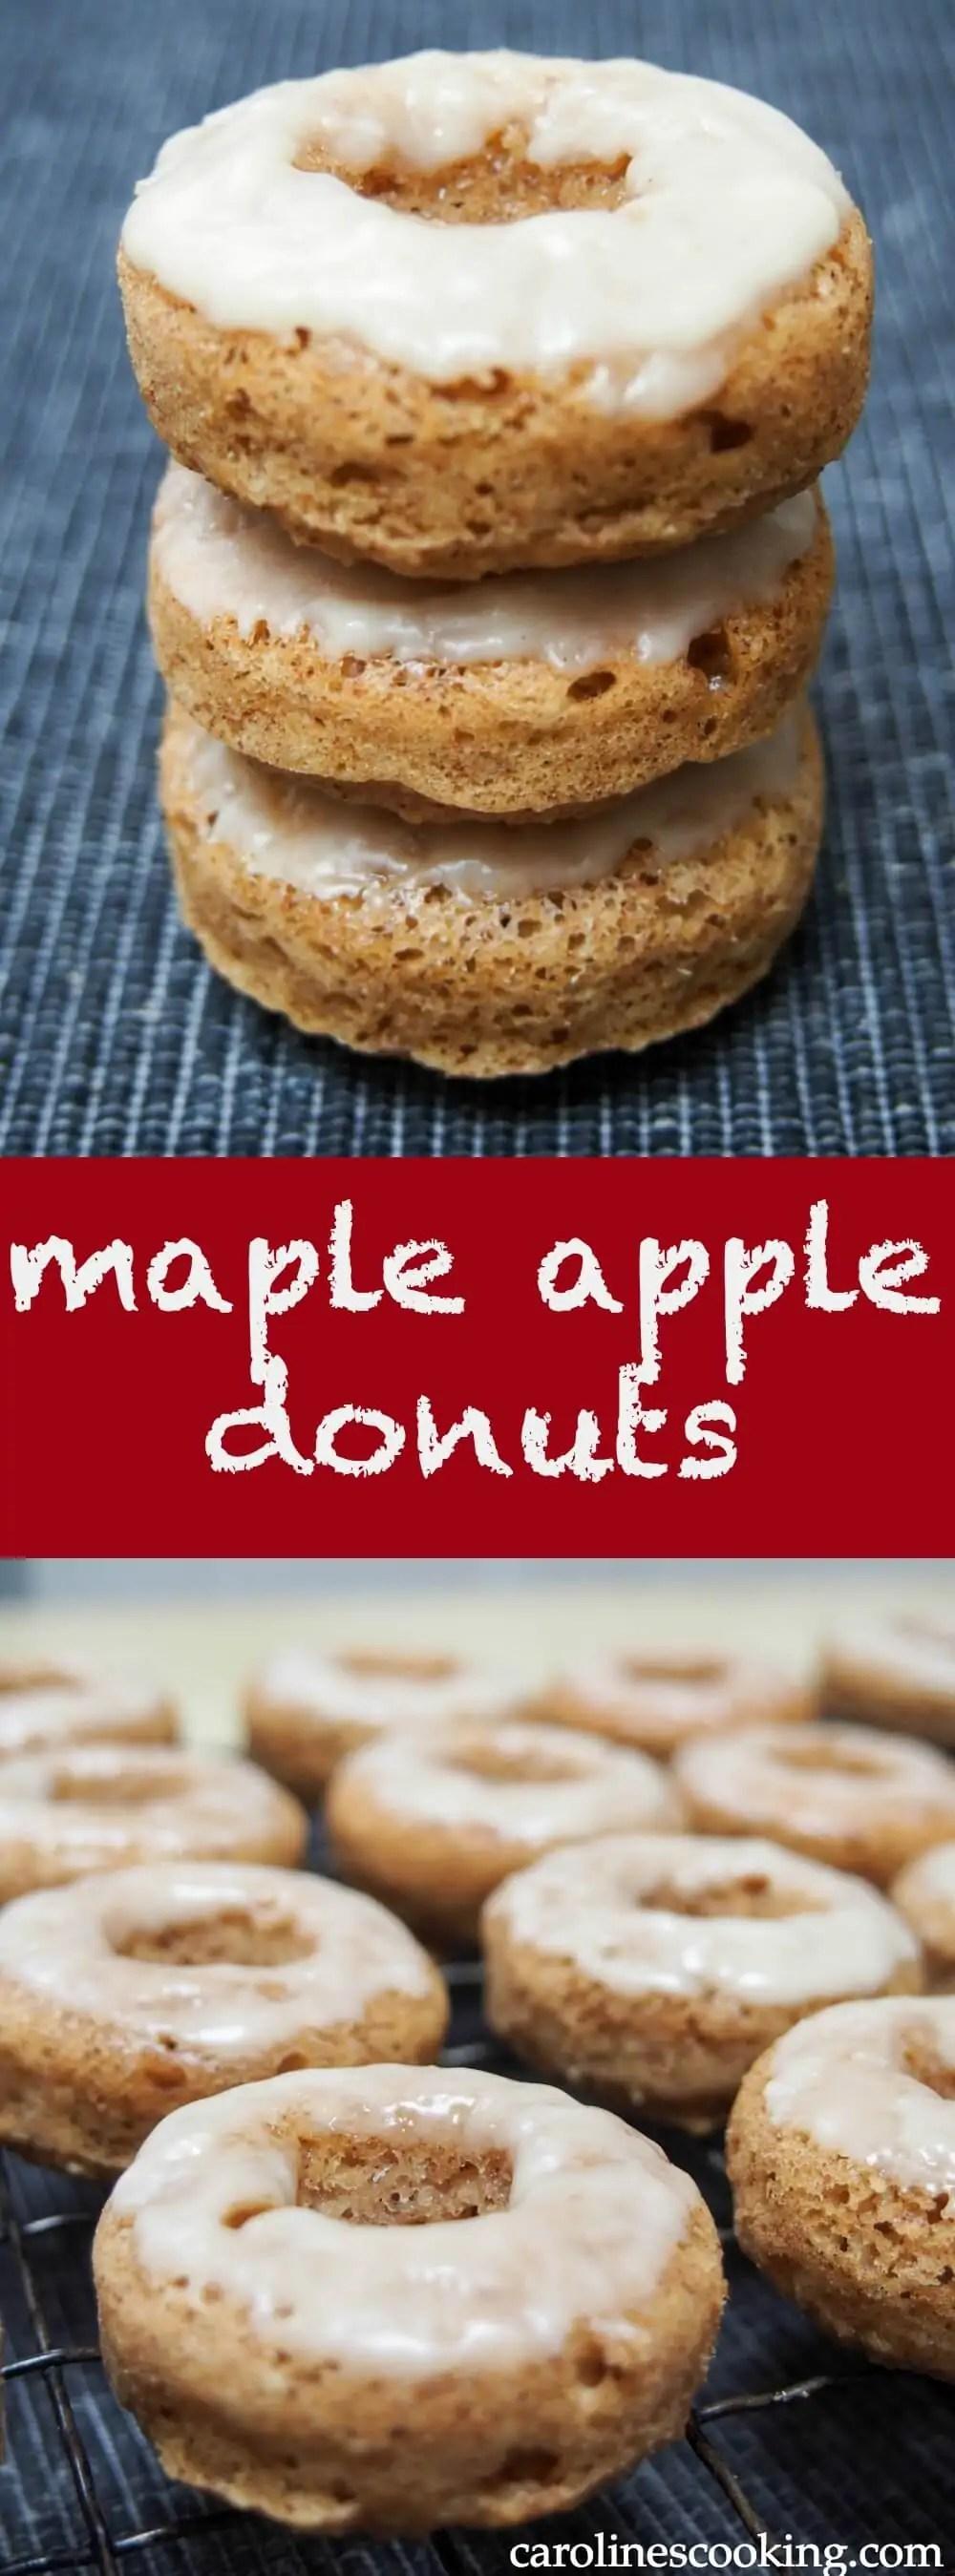 These maple apple donuts are baked rather than fried and made with oatbran, yogurt and real apple so are relatively healthy, but still incredibly delicious. A great fall flavored treat.